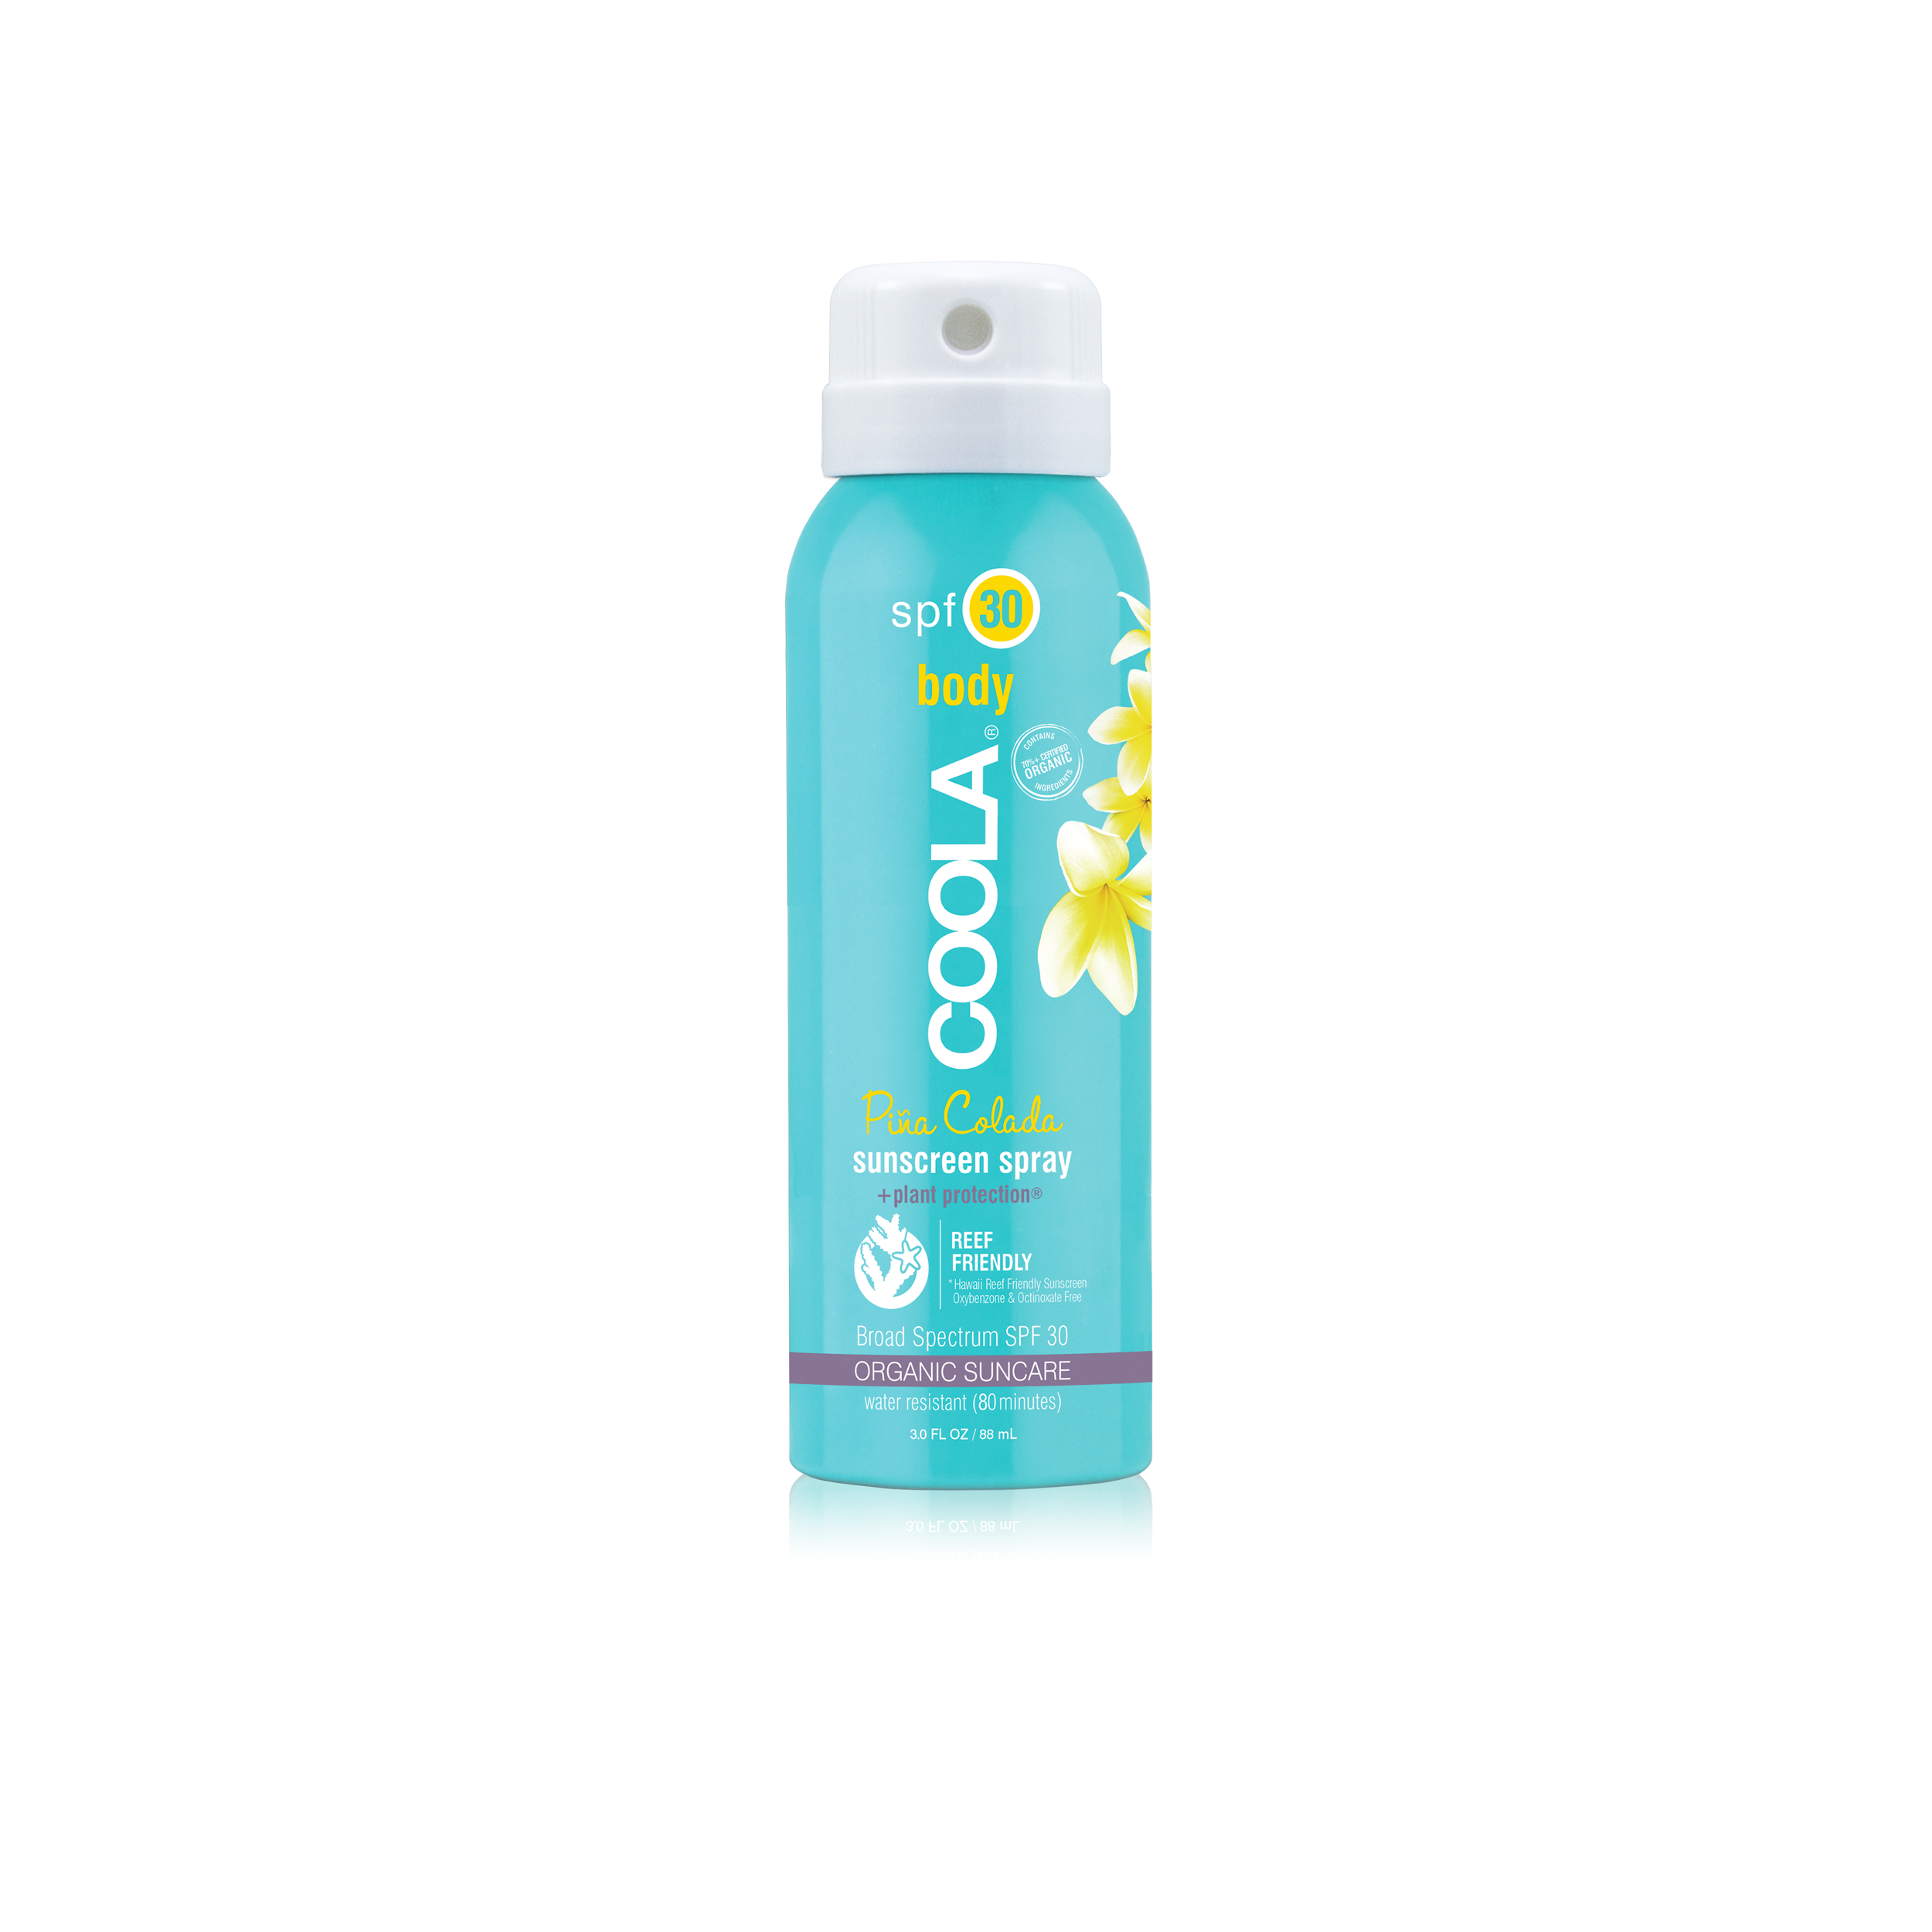 SPORT CONTINUOUS SPRAY SPF30 MINI 88 ML